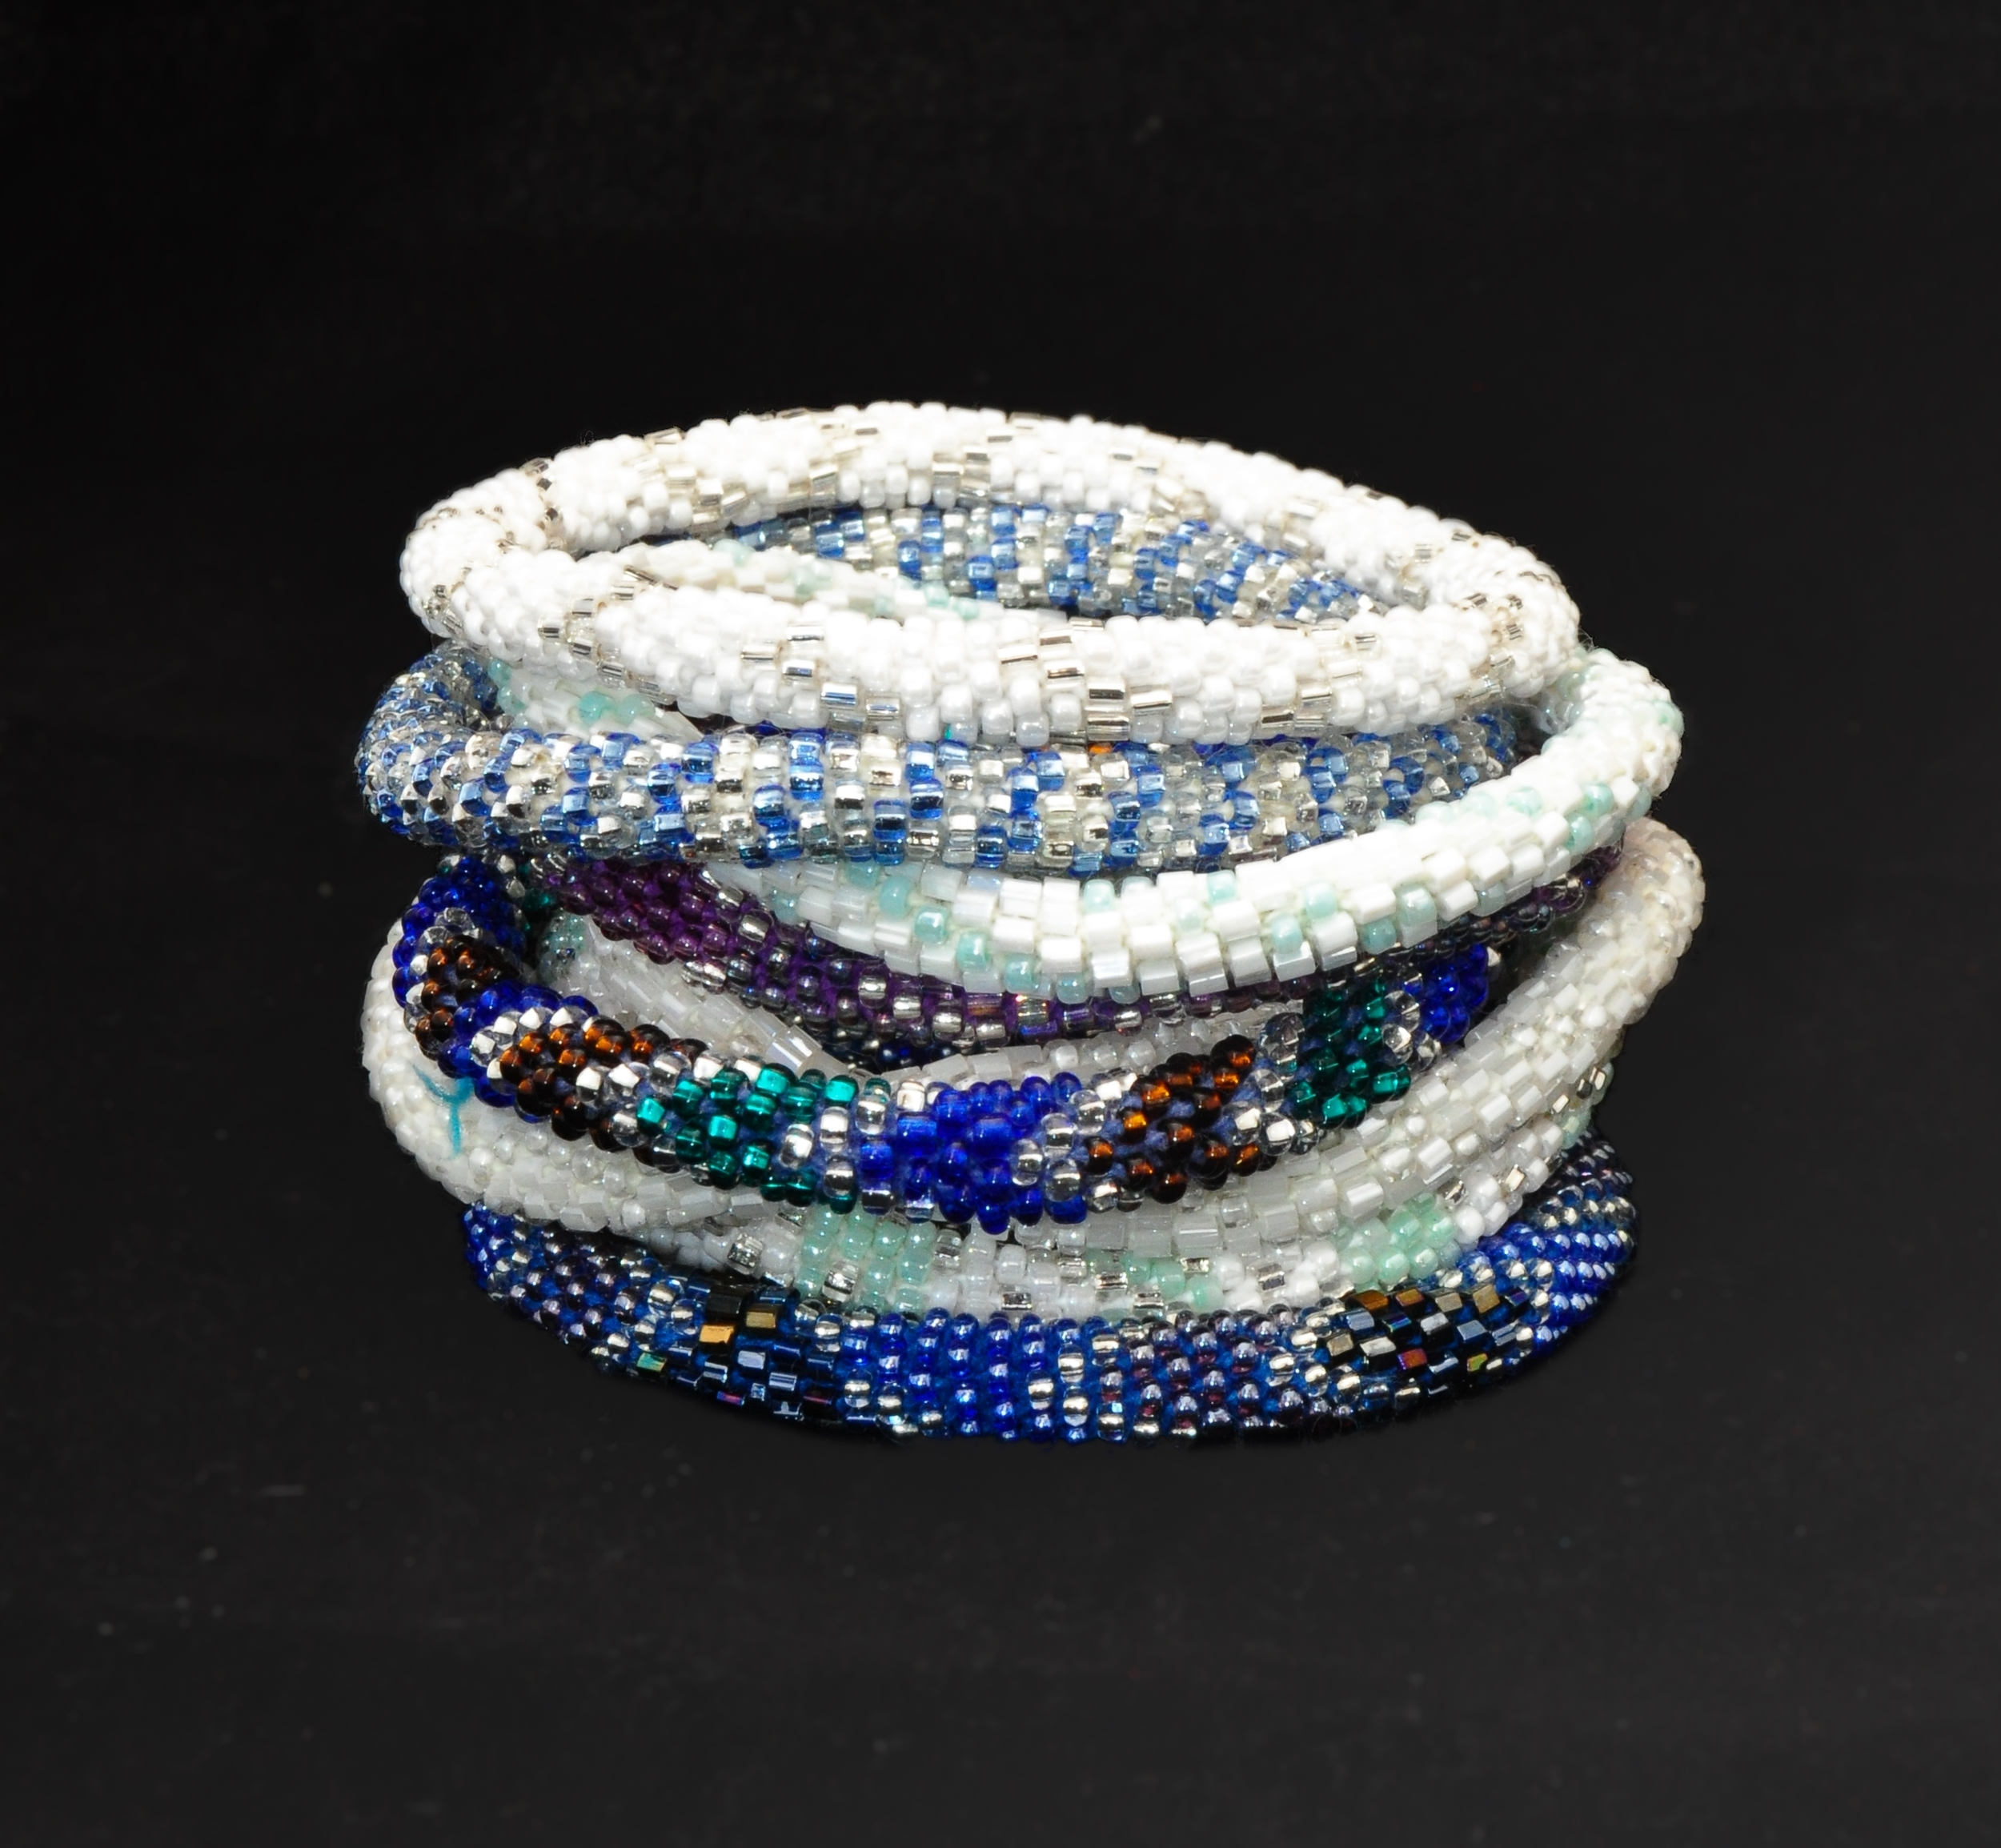 glass bead bracelets 2.jpg